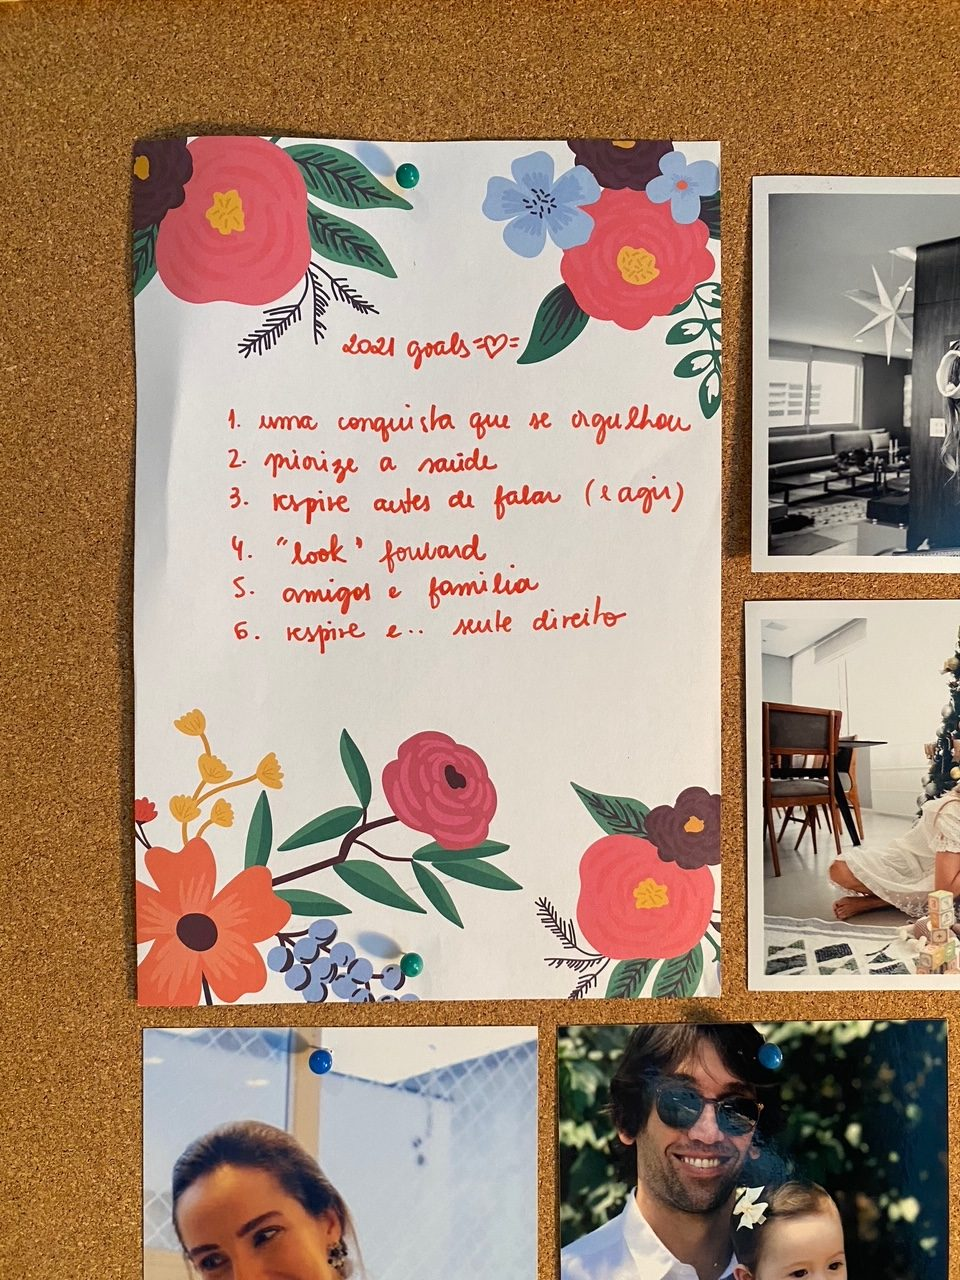 IMG 5342 rotated - Office Tour: Bibi Schick's Cozy-Green Home Office